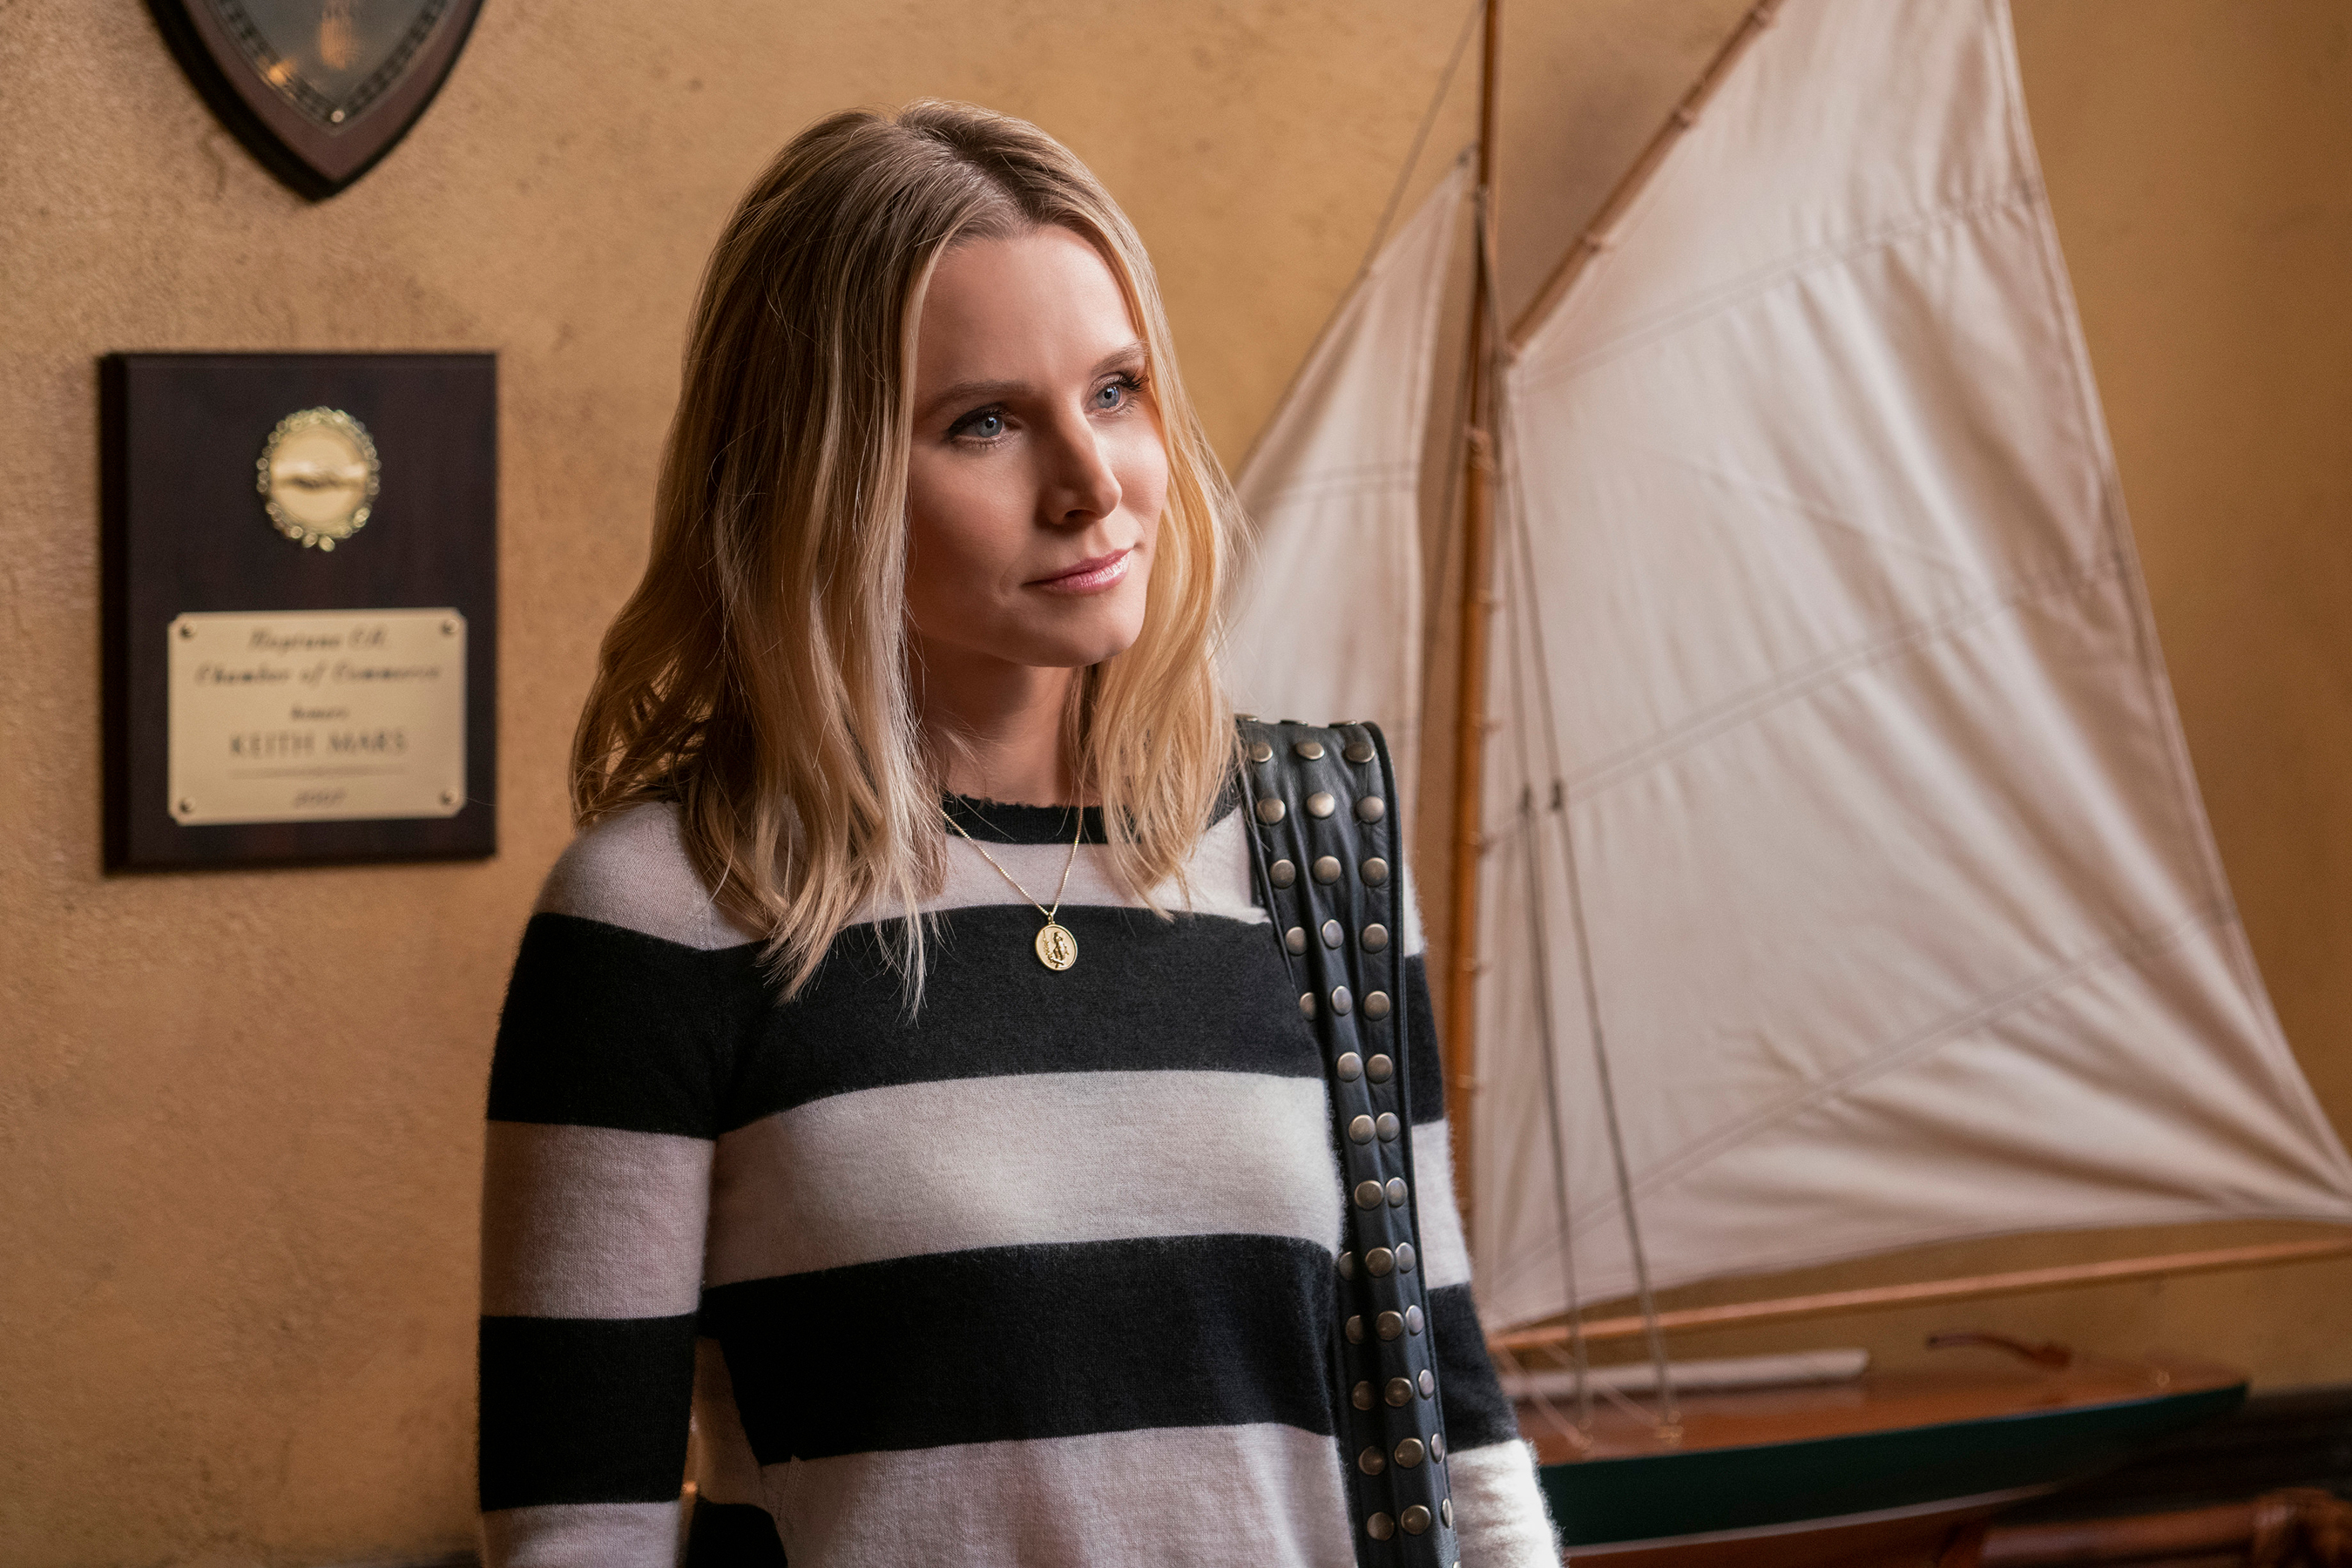 'Veronica Mars' Revival Brings New Blood to Neptune but Fails to Evolve the Old